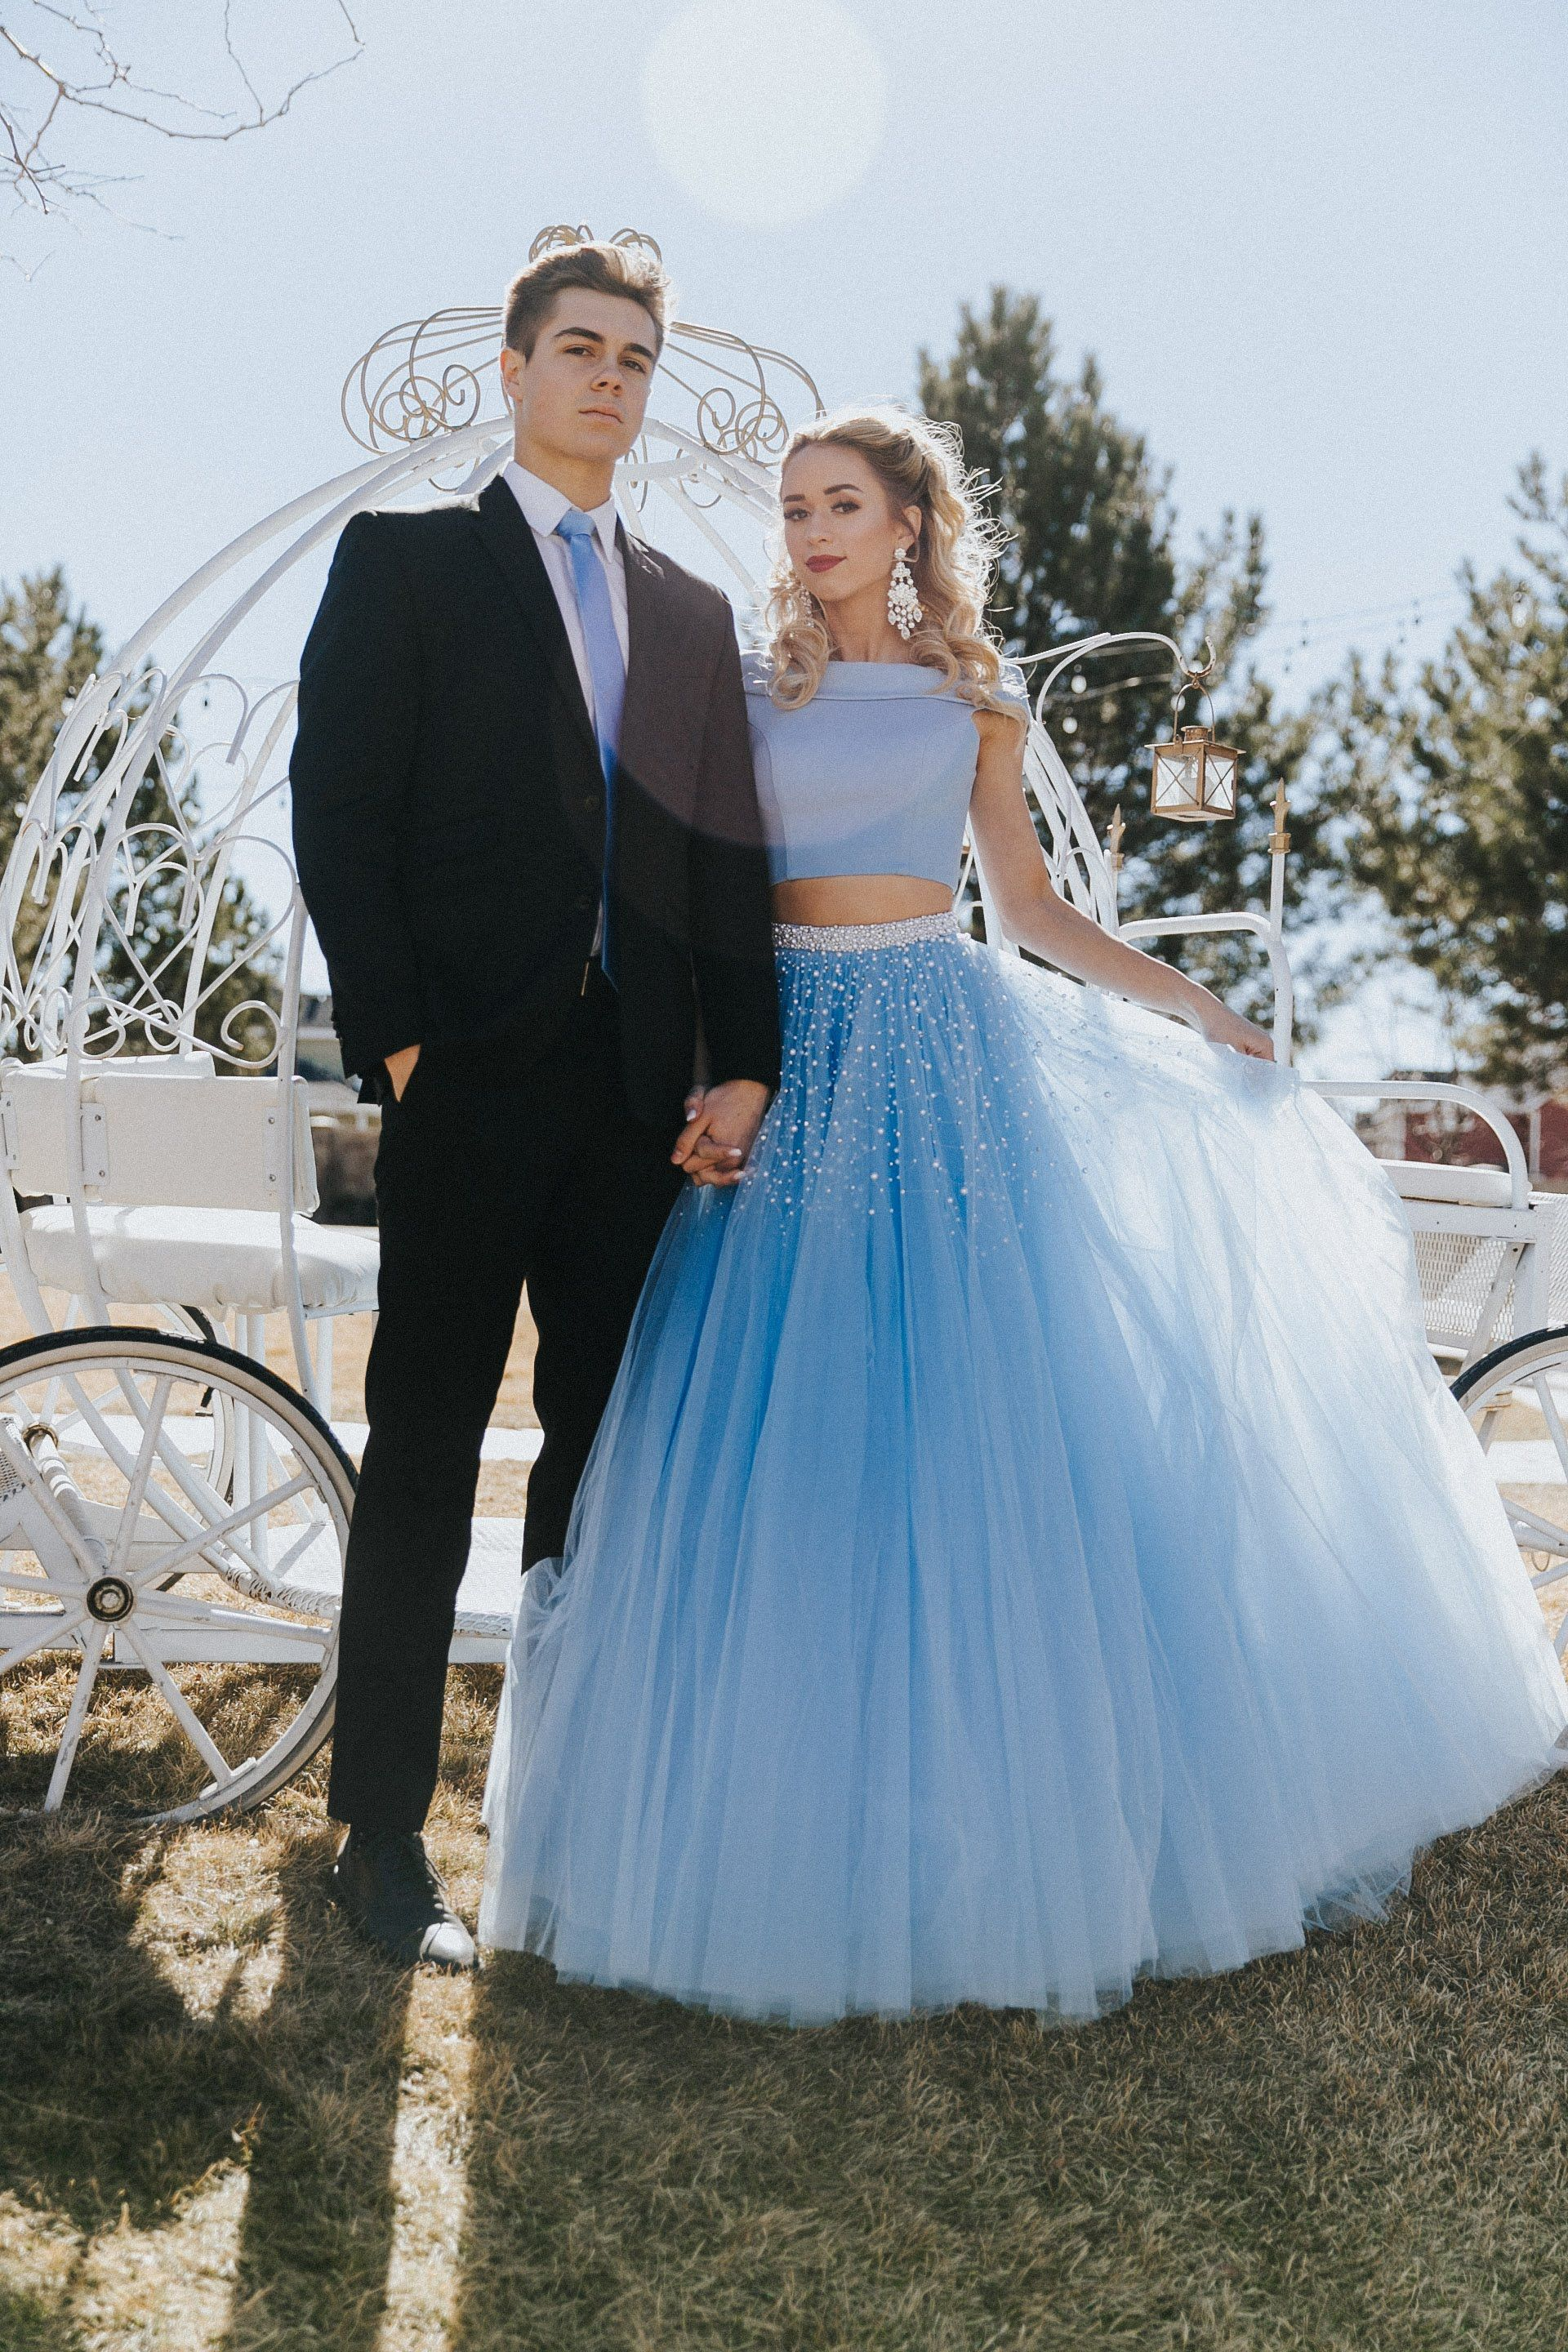 Light Blue 2 Piece Tulle Ballgown Skirt With Pearl Detailing And Beaded Belt Periwinkle Blue Ligh Blue Tulle Prom Dress Prom Dresses Blue Light Blue Prom Dress [ 2880 x 1920 Pixel ]